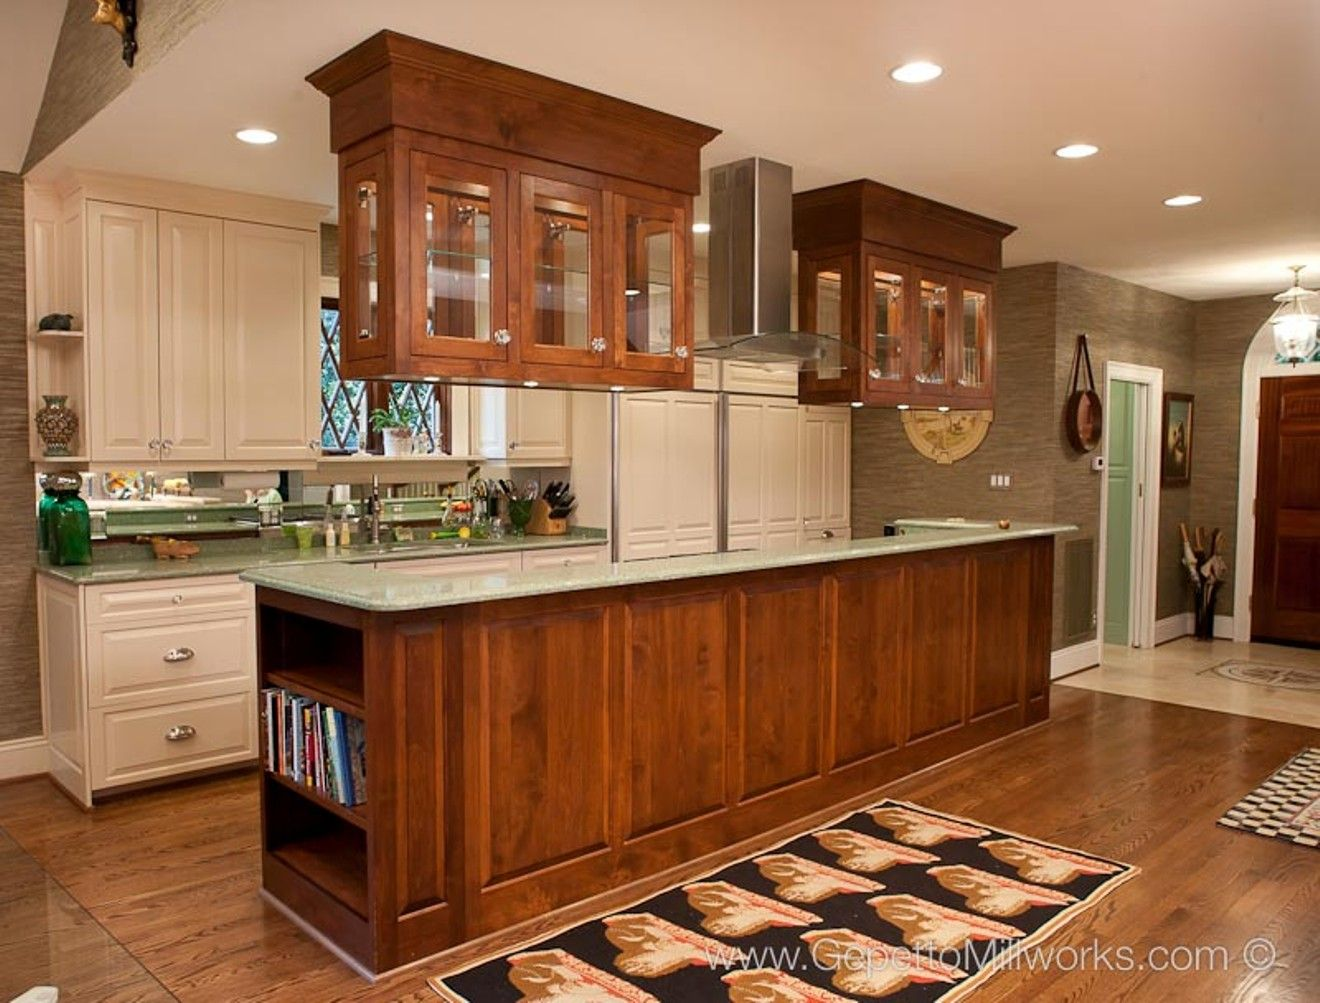 superb How To Hang Kitchen Cabinets From Ceiling #7: 17 Best Images About Kitchen Cabinets On Pinterest Stains Maple . Putting  ...